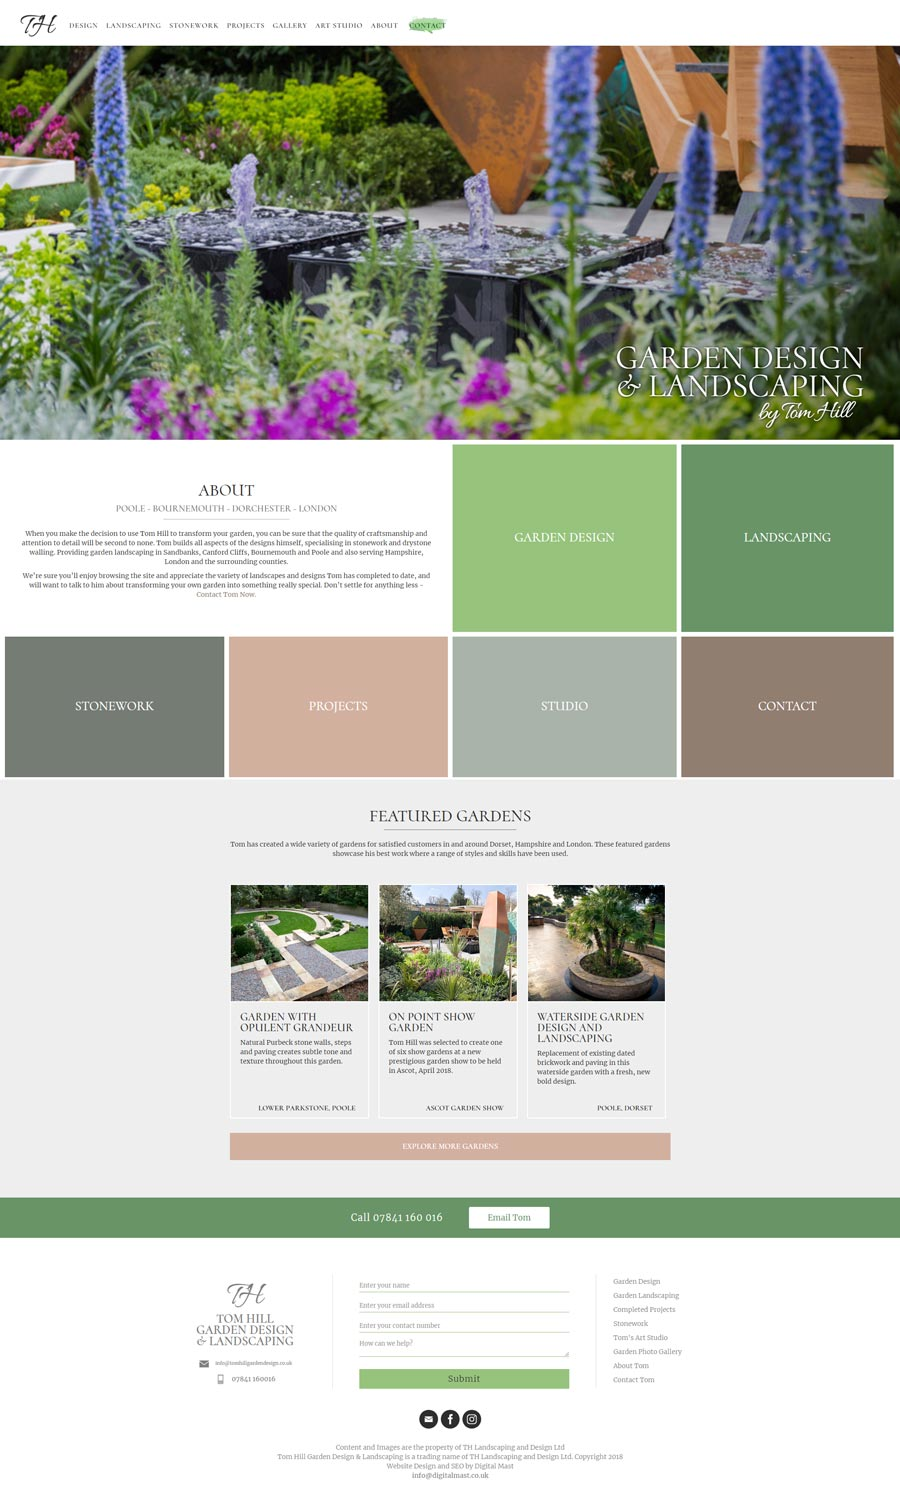 Garden Design and Landscaping Website Design